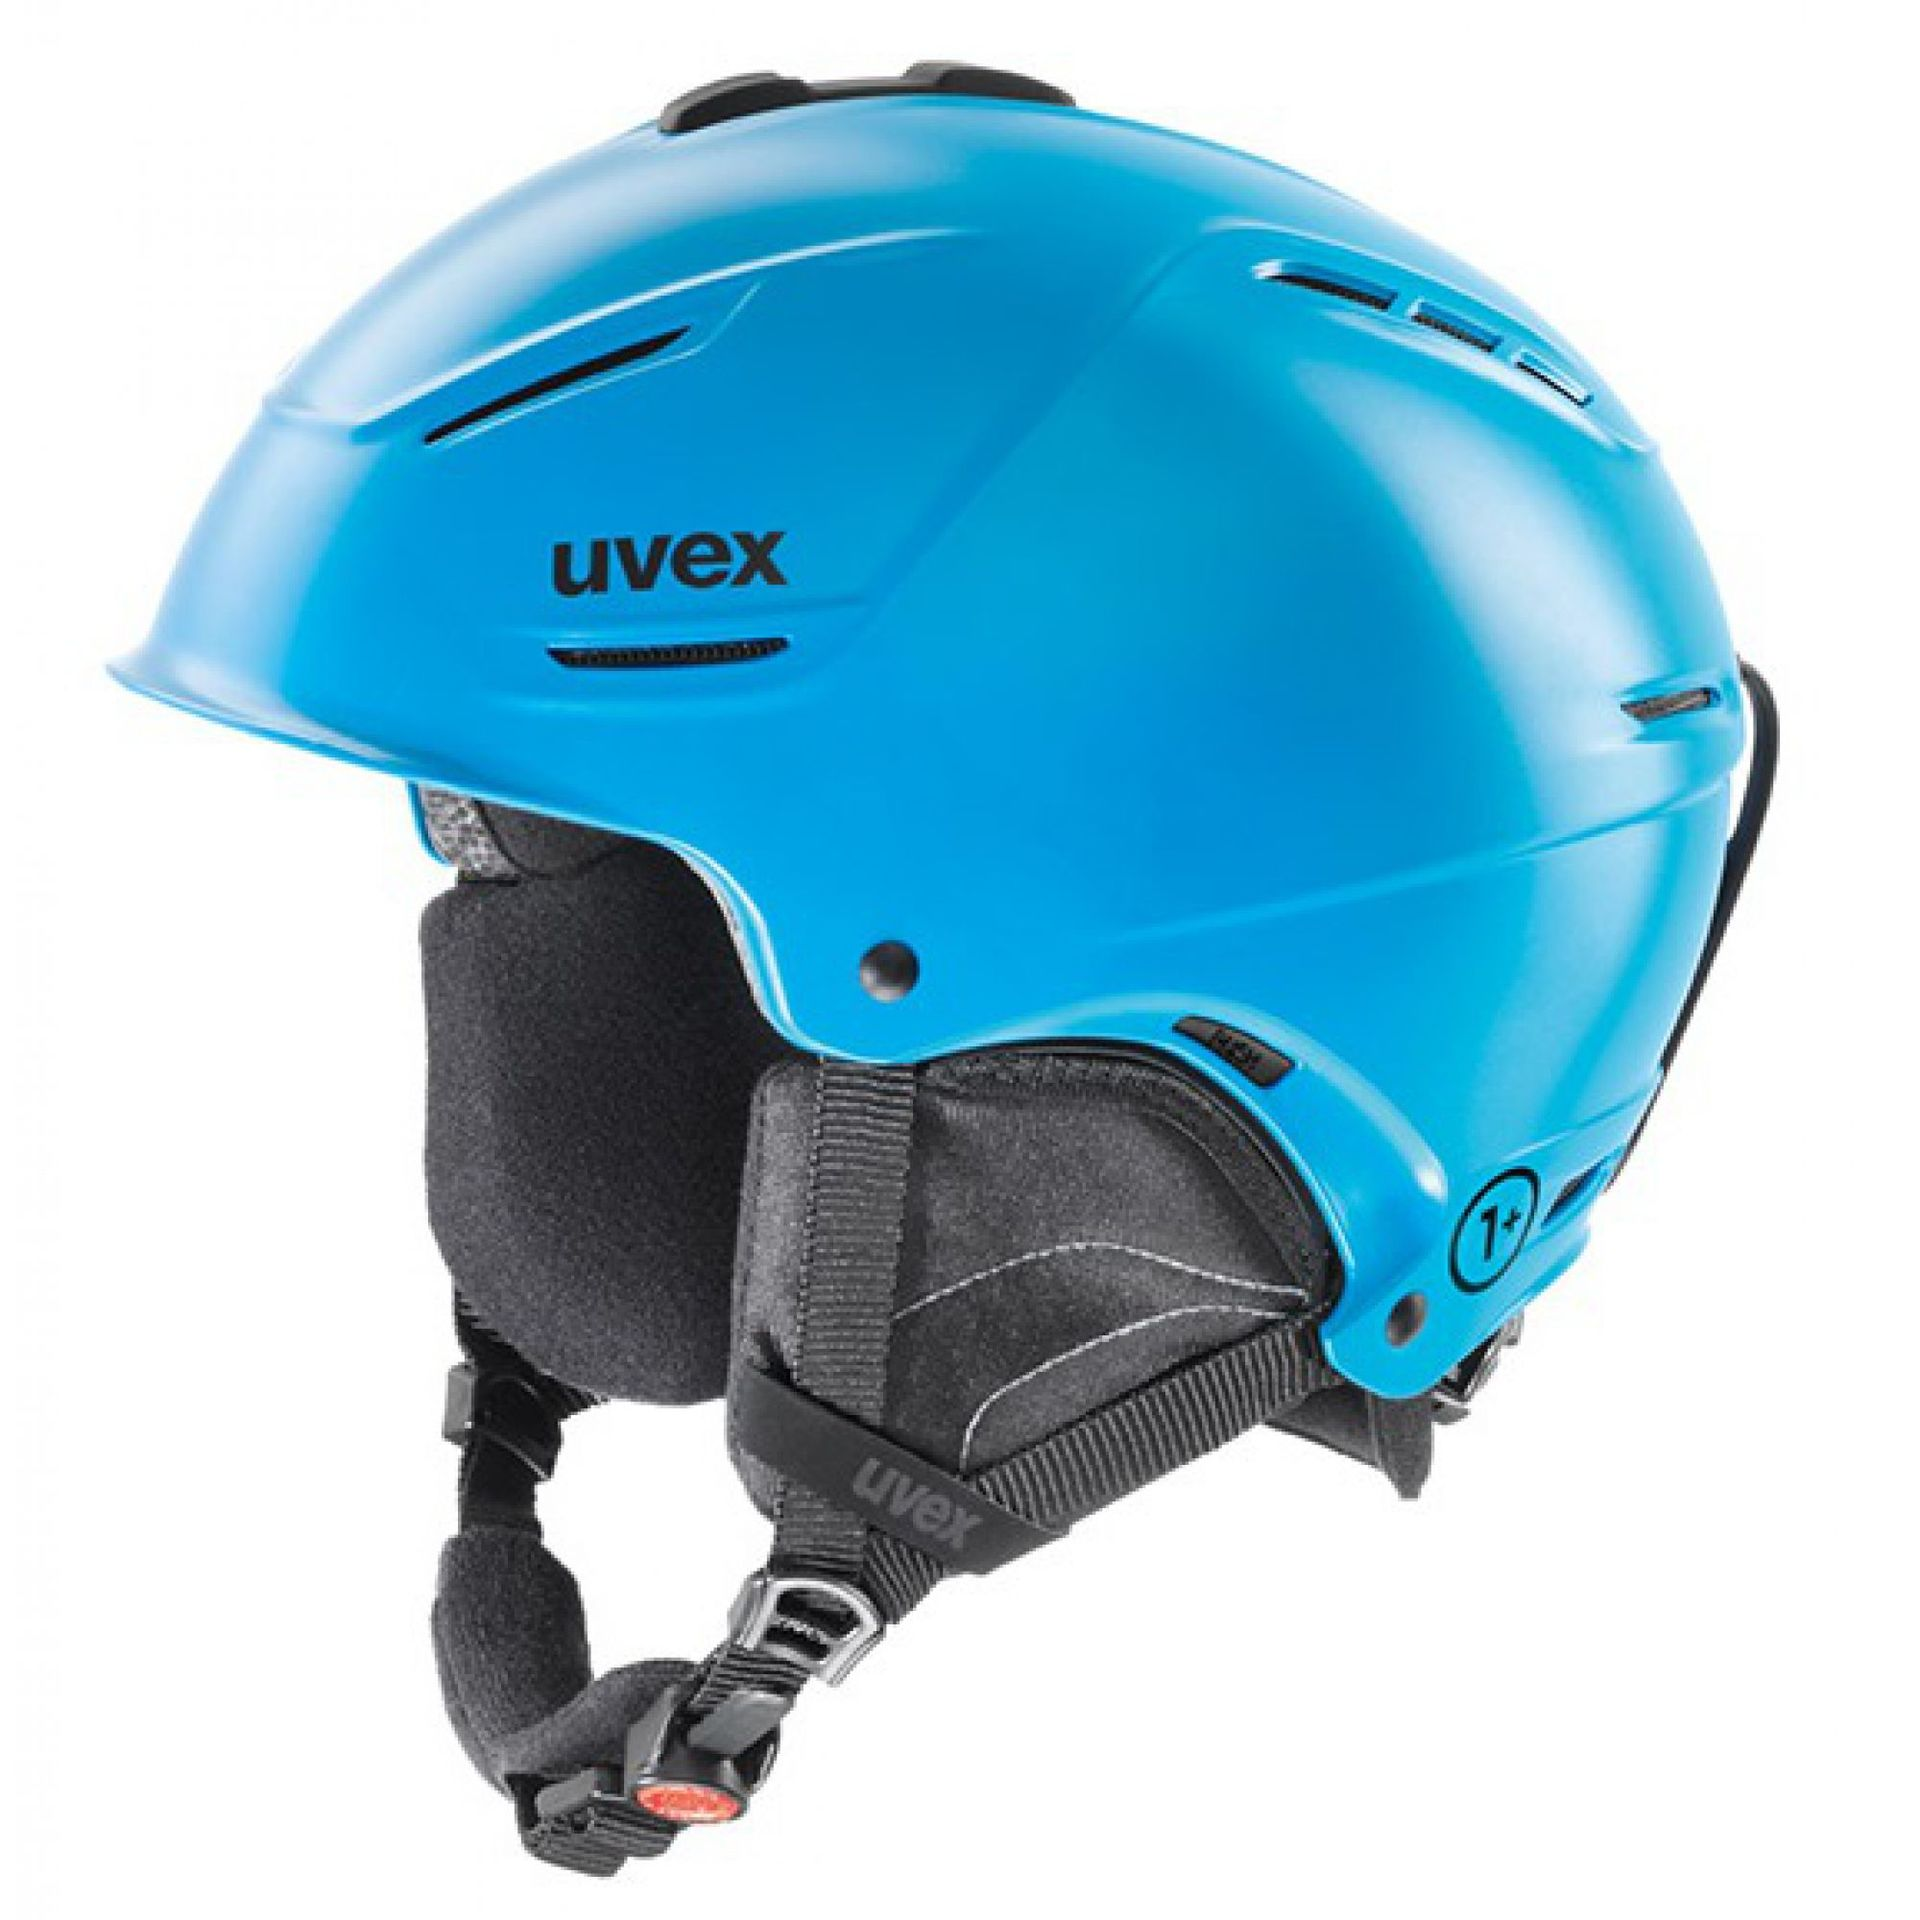 KASK UVEX P1US CYCAN MAT